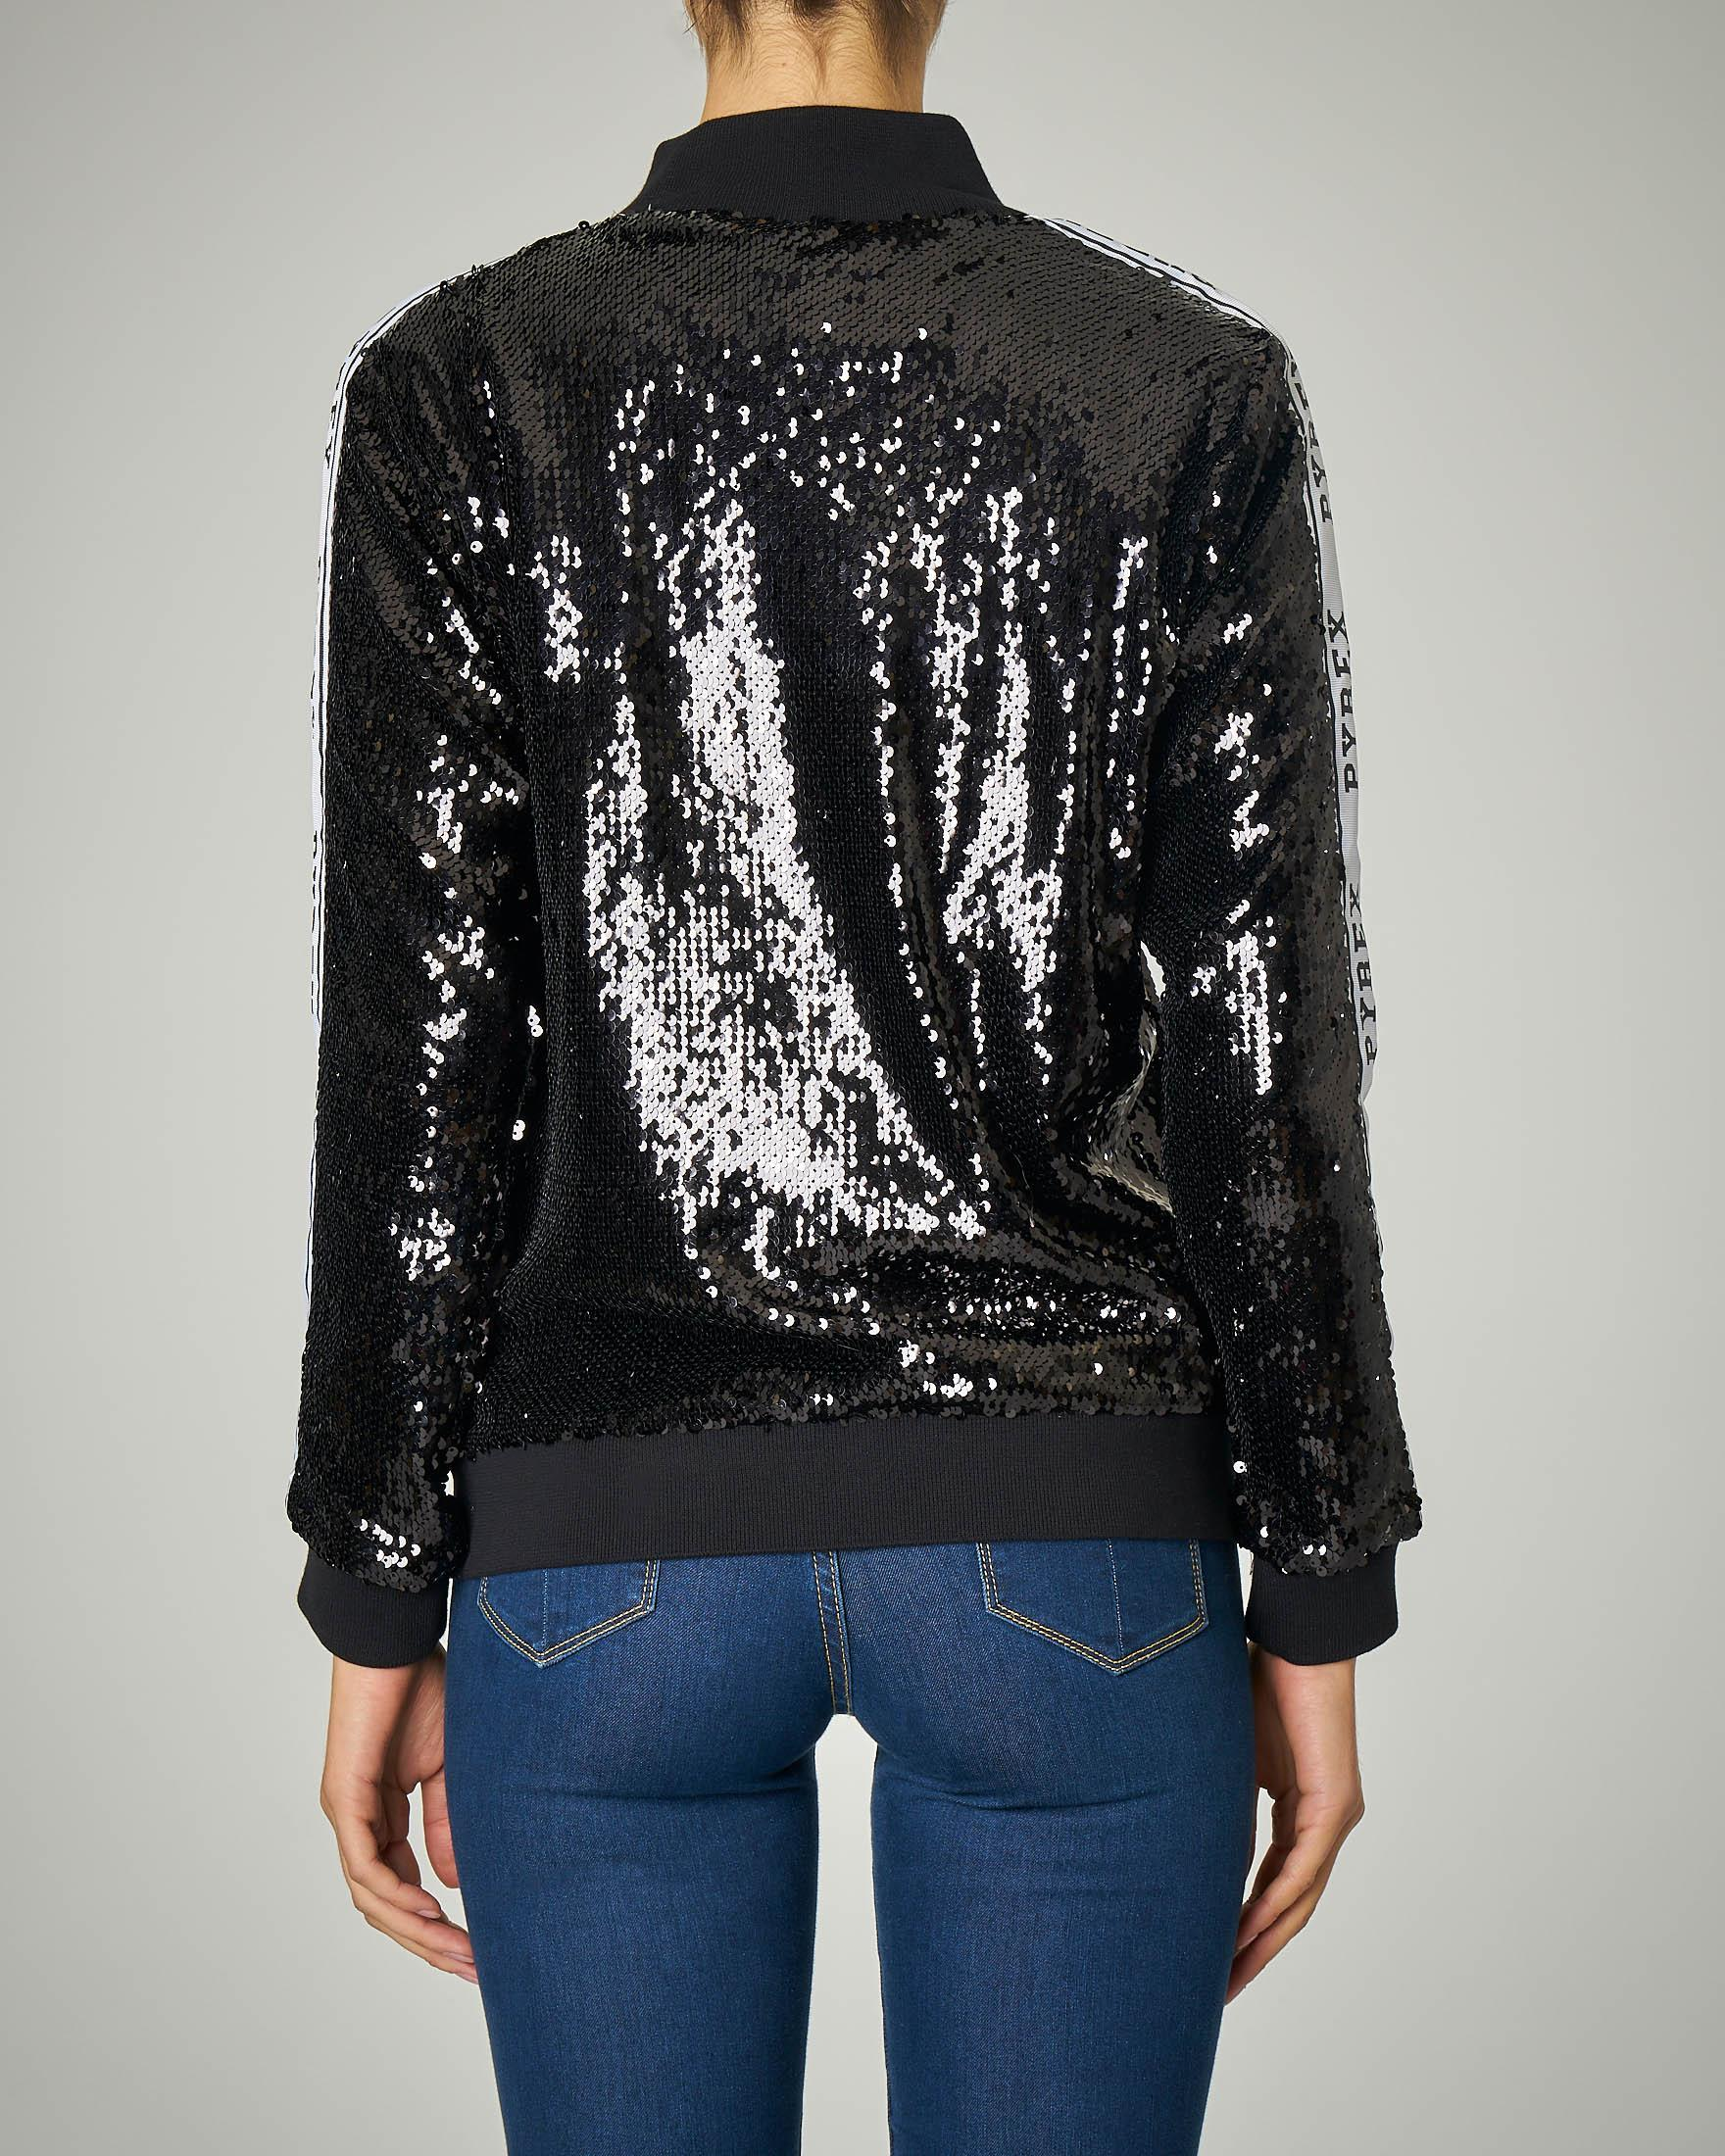 Felpa nera in paillettes con zip